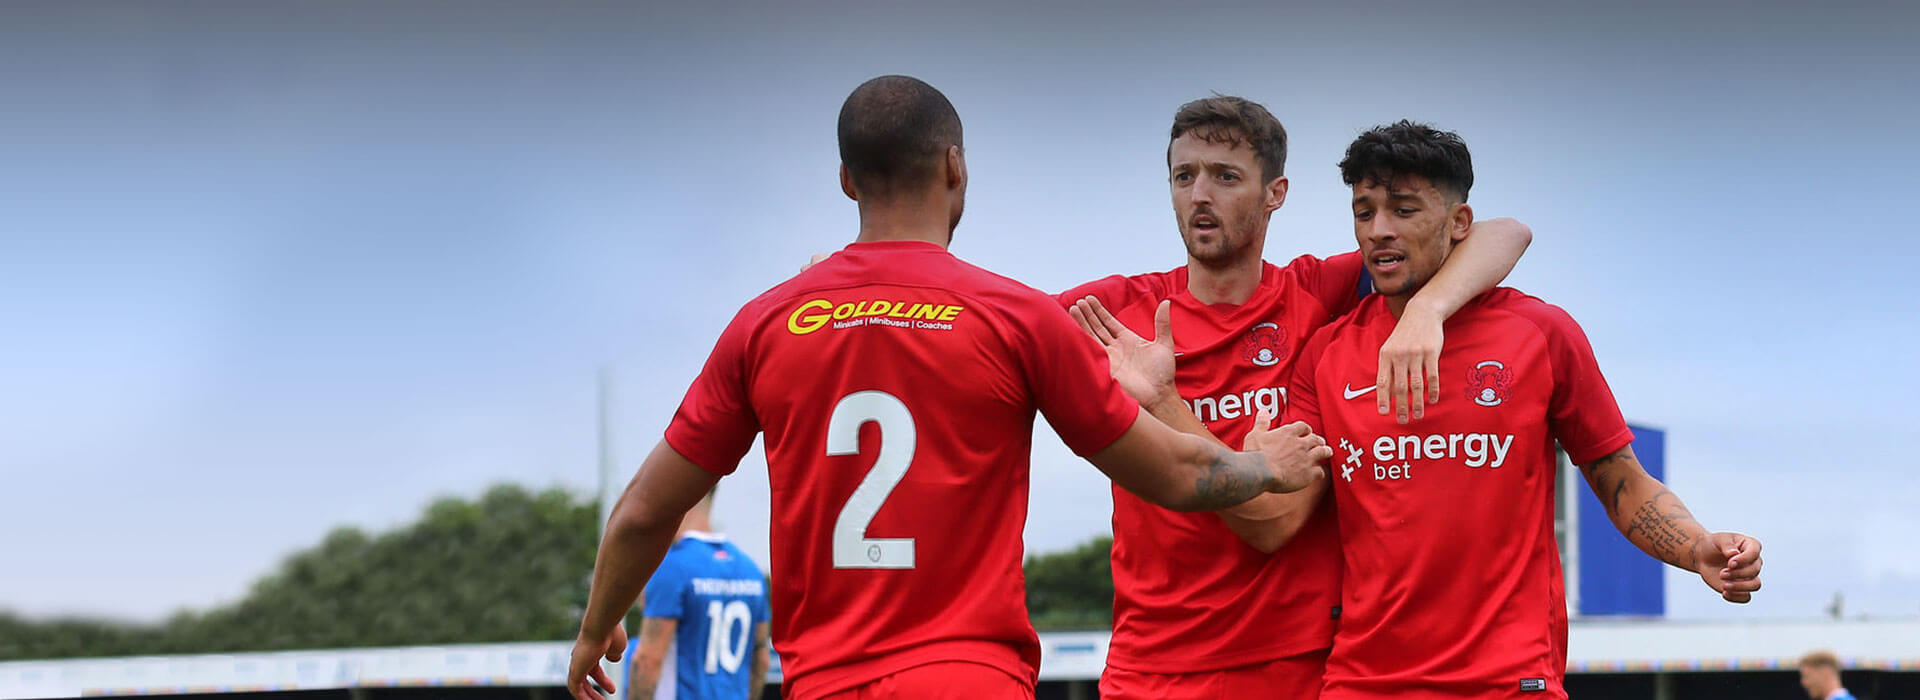 O's Beat Billericay as they Debut New Kit